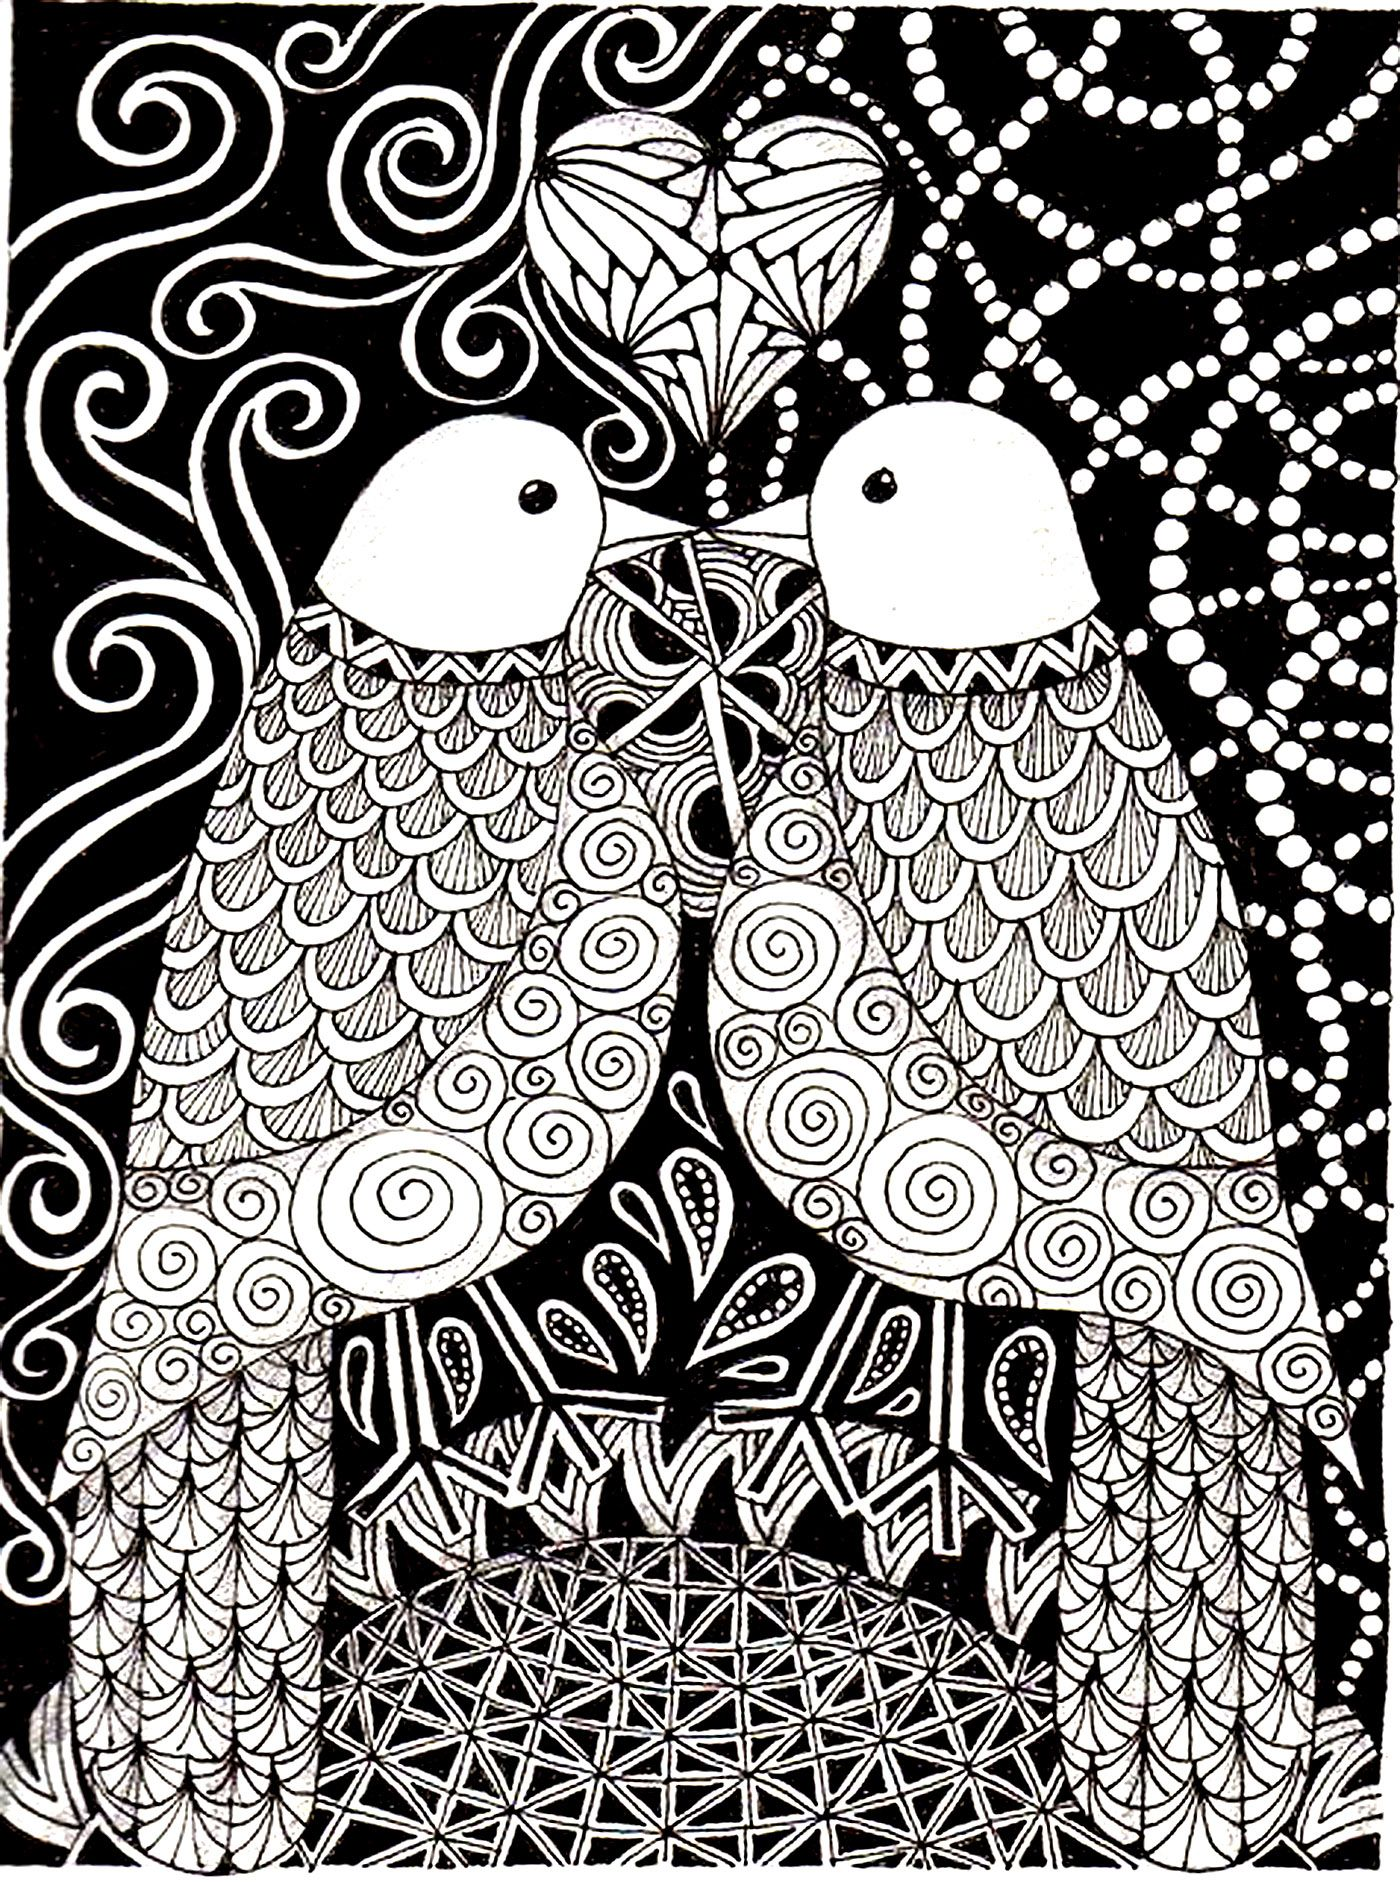 Zen and anti stress coloring pages for adults coloring page love - Adult Coloring